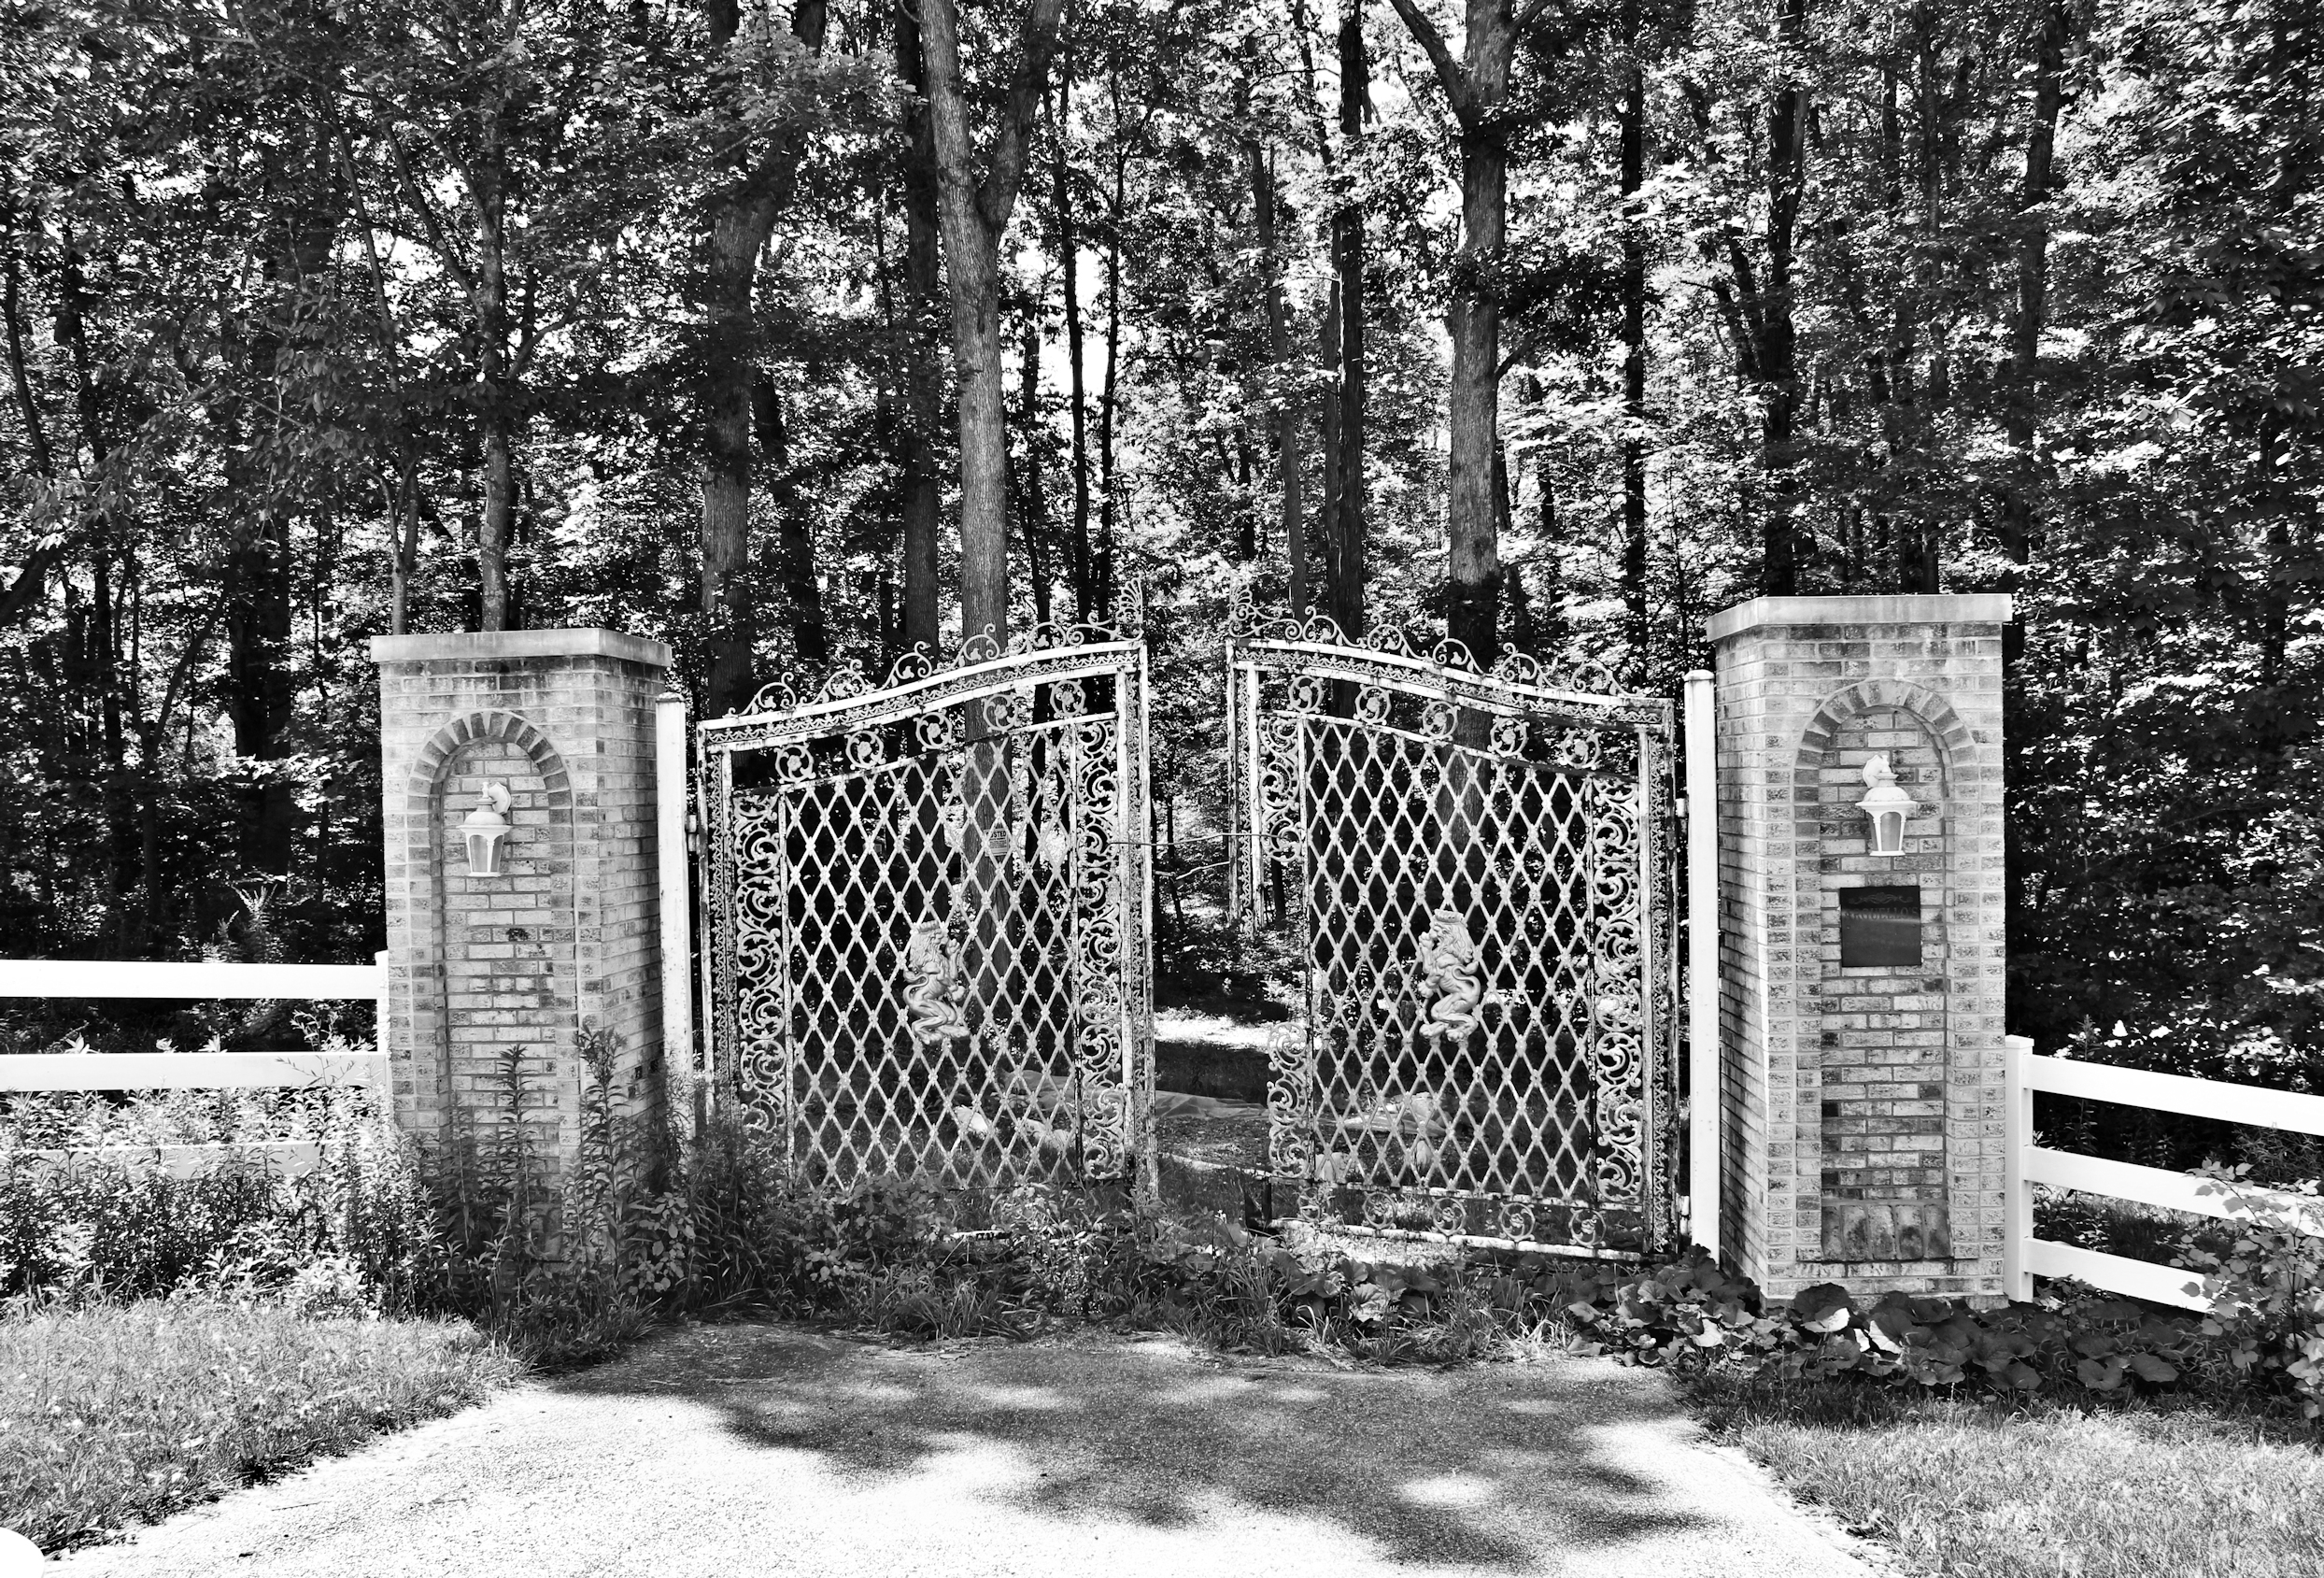 Vintage iron gate leading to a forest